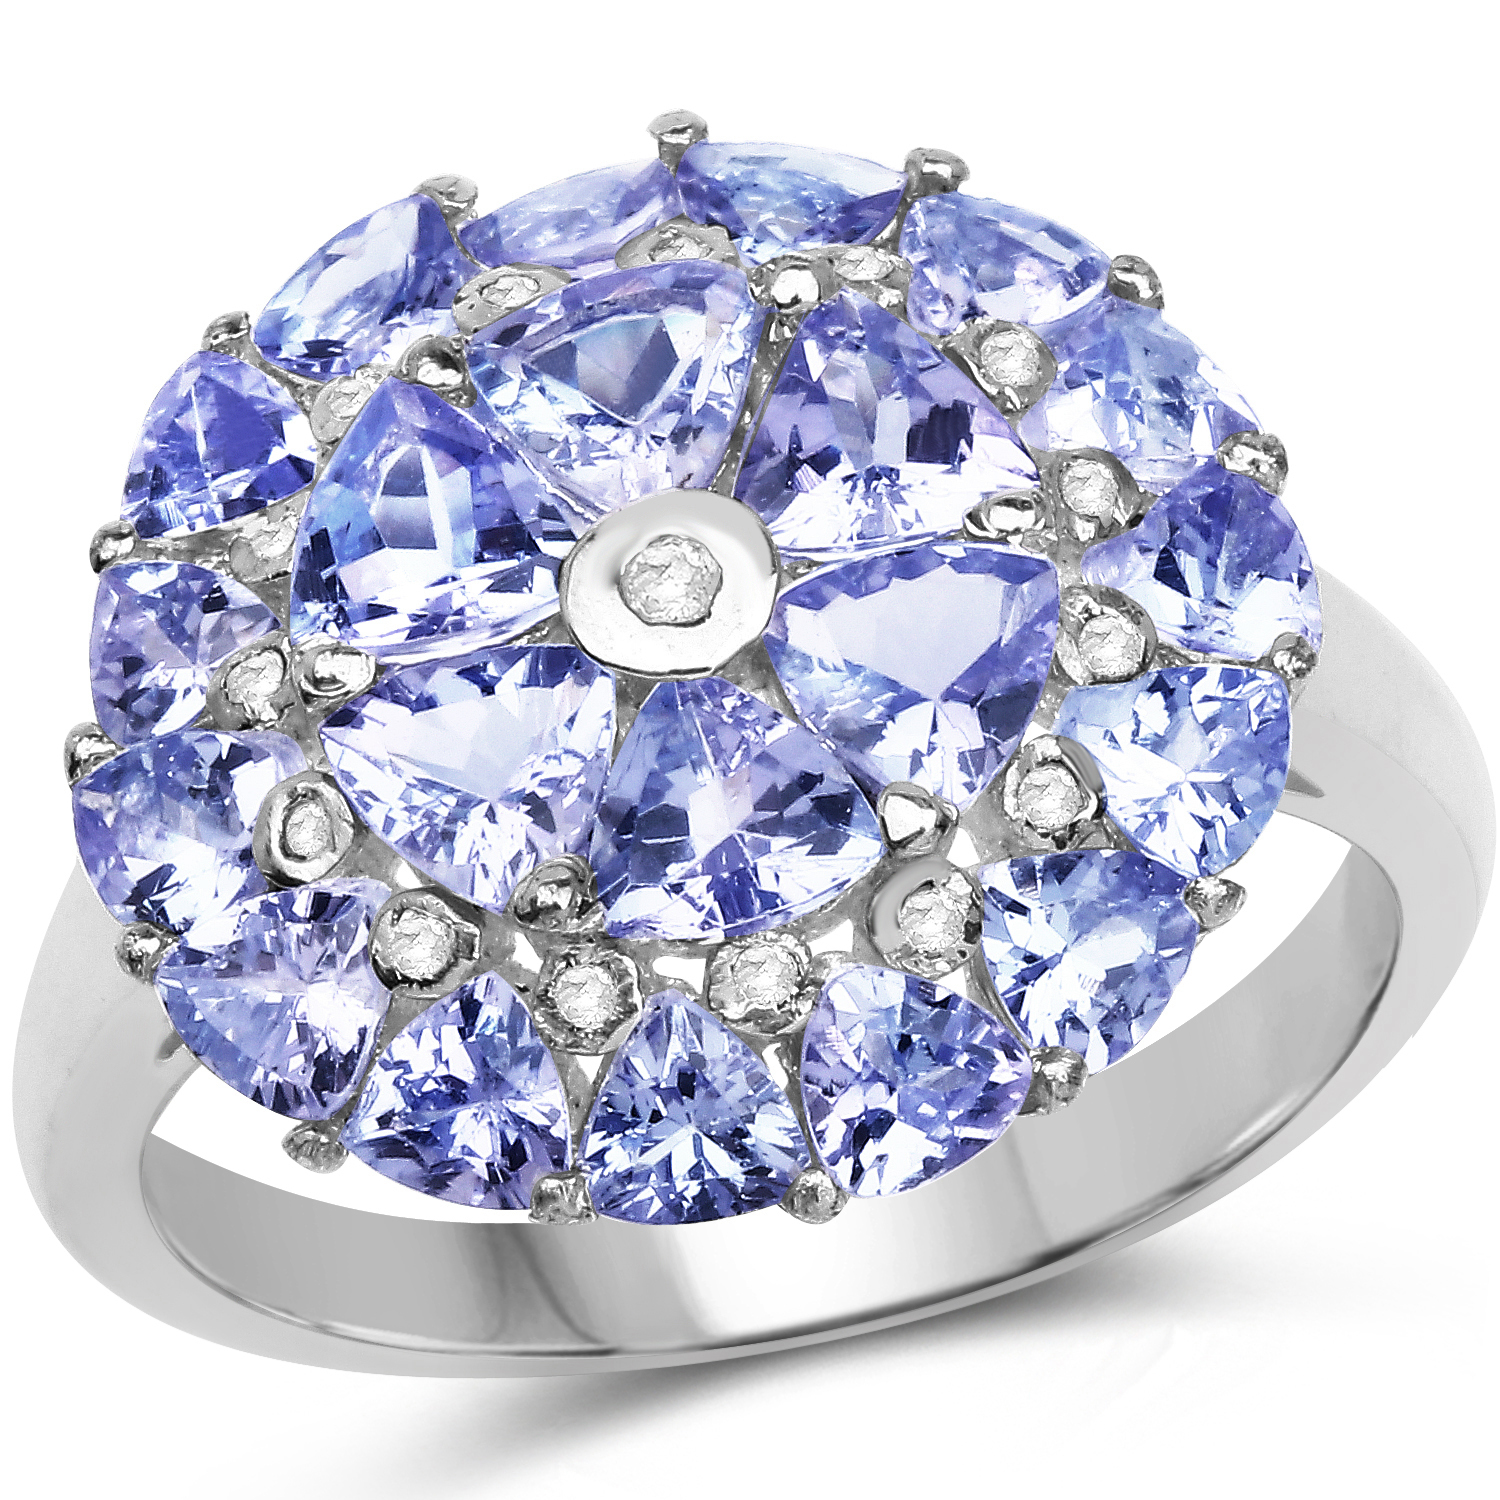 Genuine Trillion Tanzanite and Tanzanite Ring in Sterling Silver Size 7.00 by Bonyak Jewelry